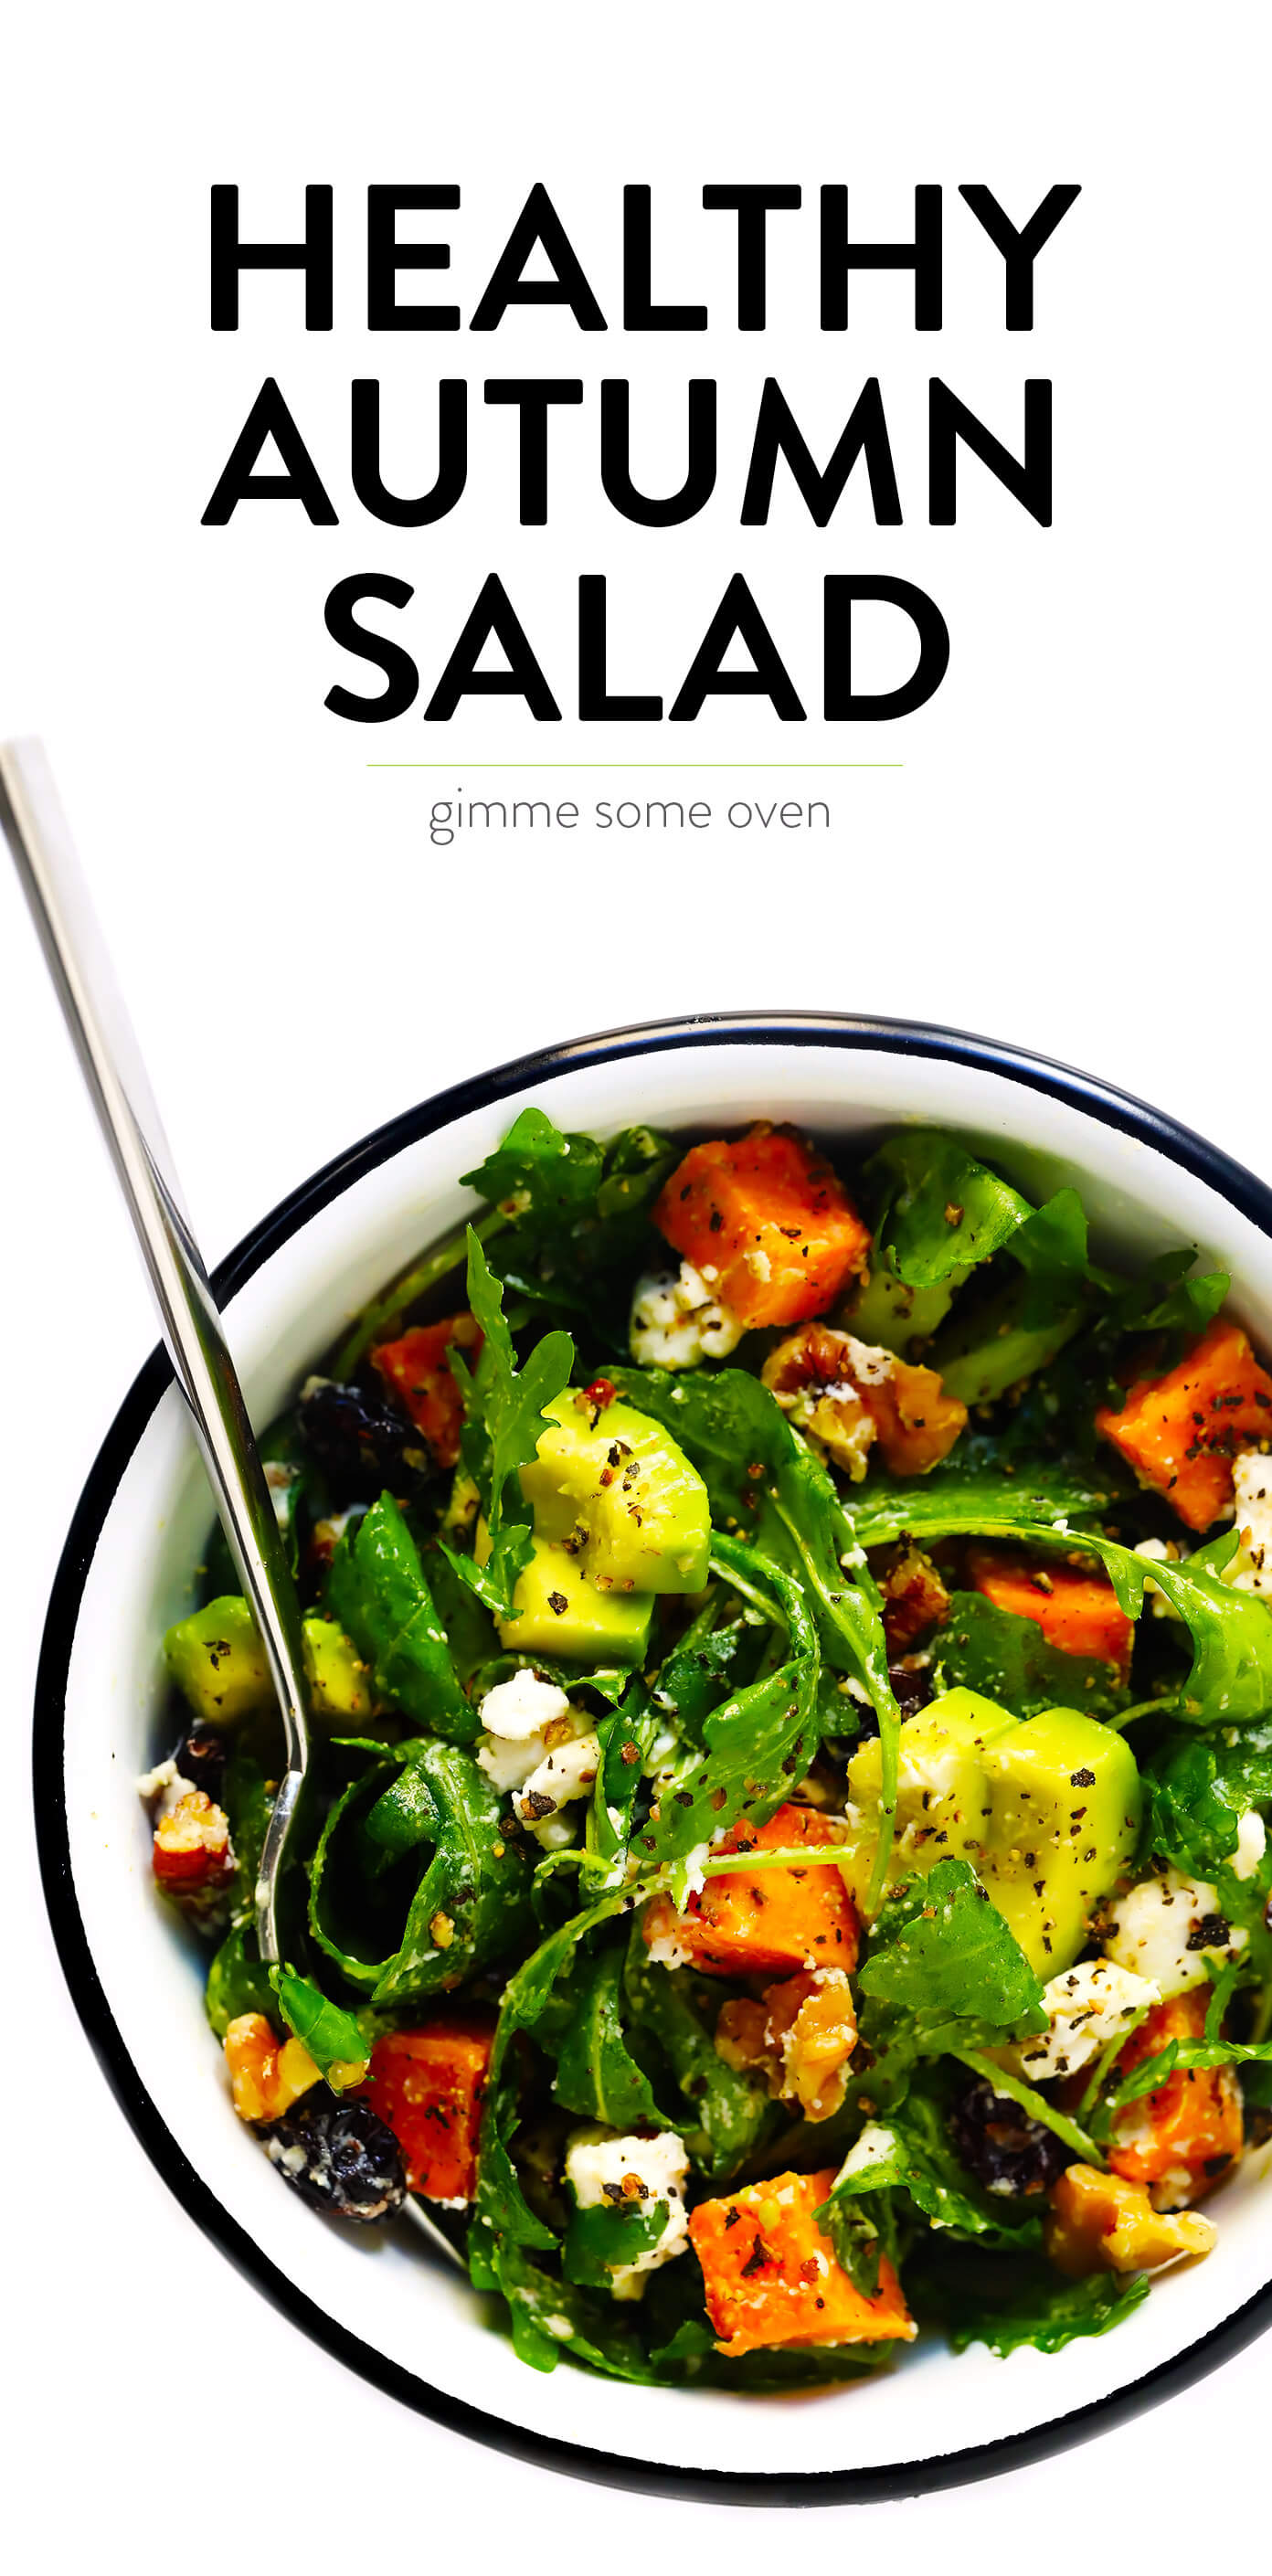 Healthy Autumn Harvest Salad Recipe with Sweet Potato, Avocado, Goat Cheese and Lemon Dressing